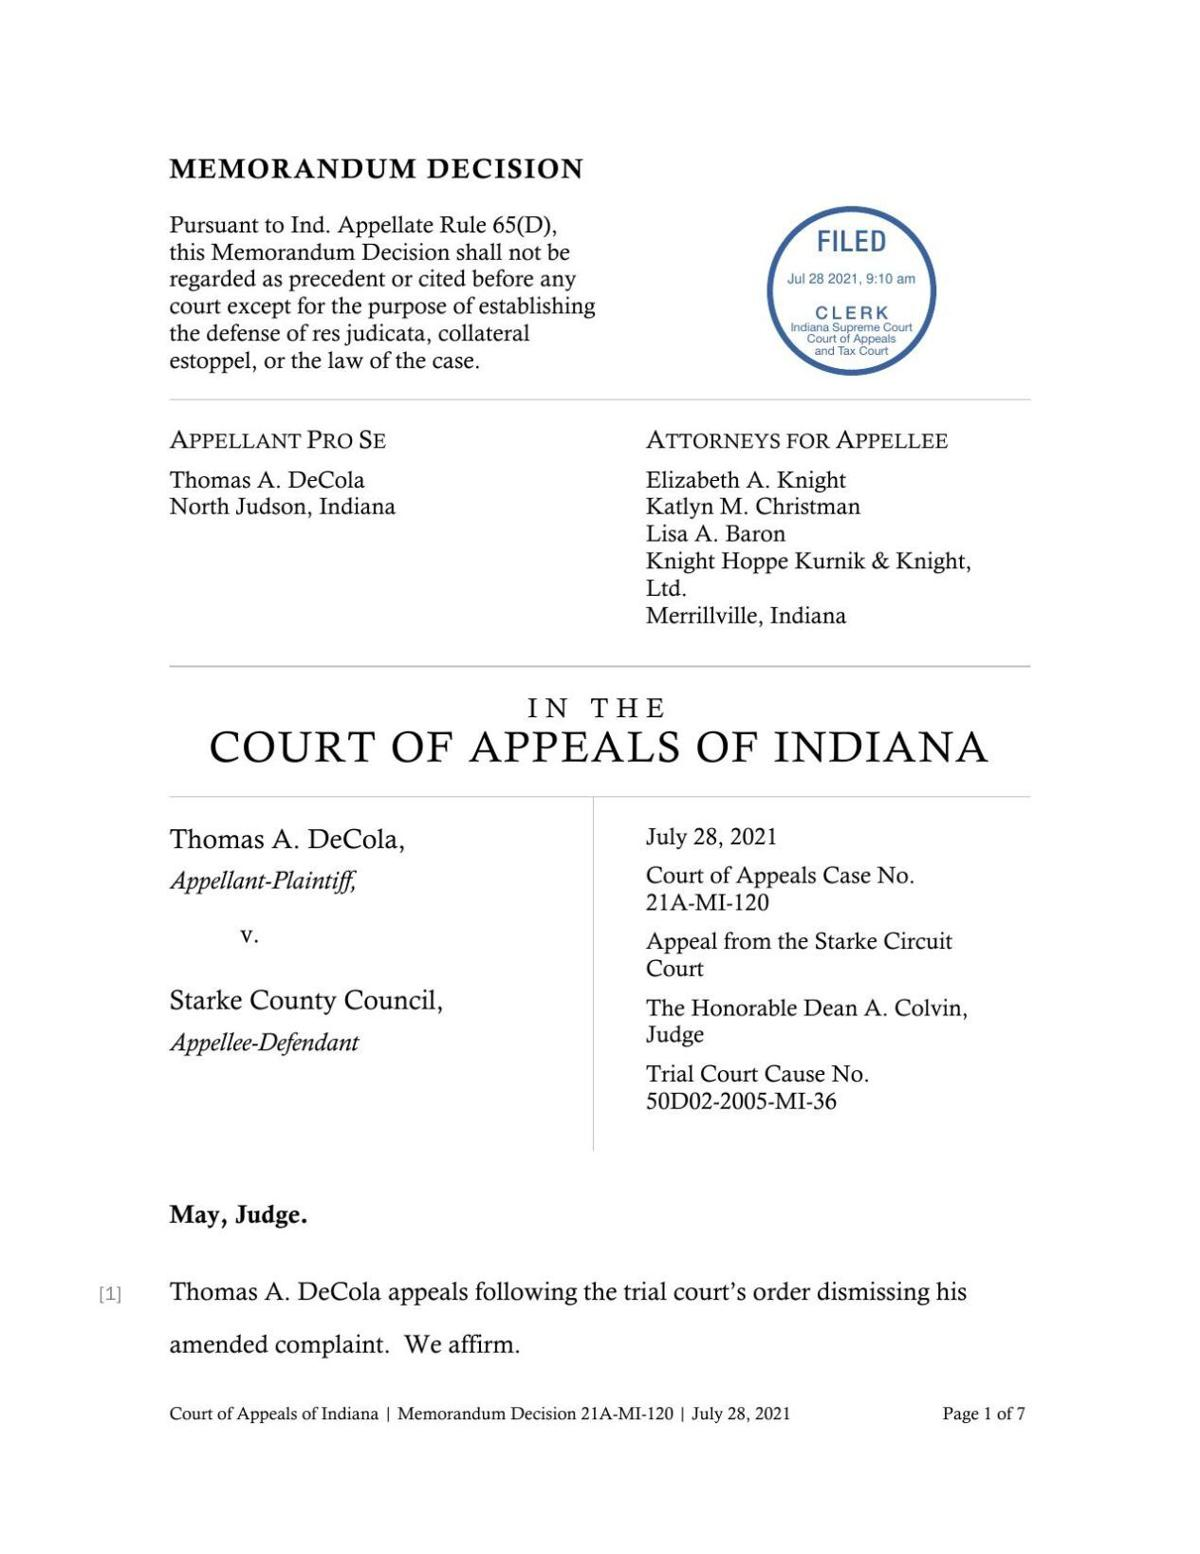 DeCola v. Starke County Council ruling of Indiana Court of Appeals